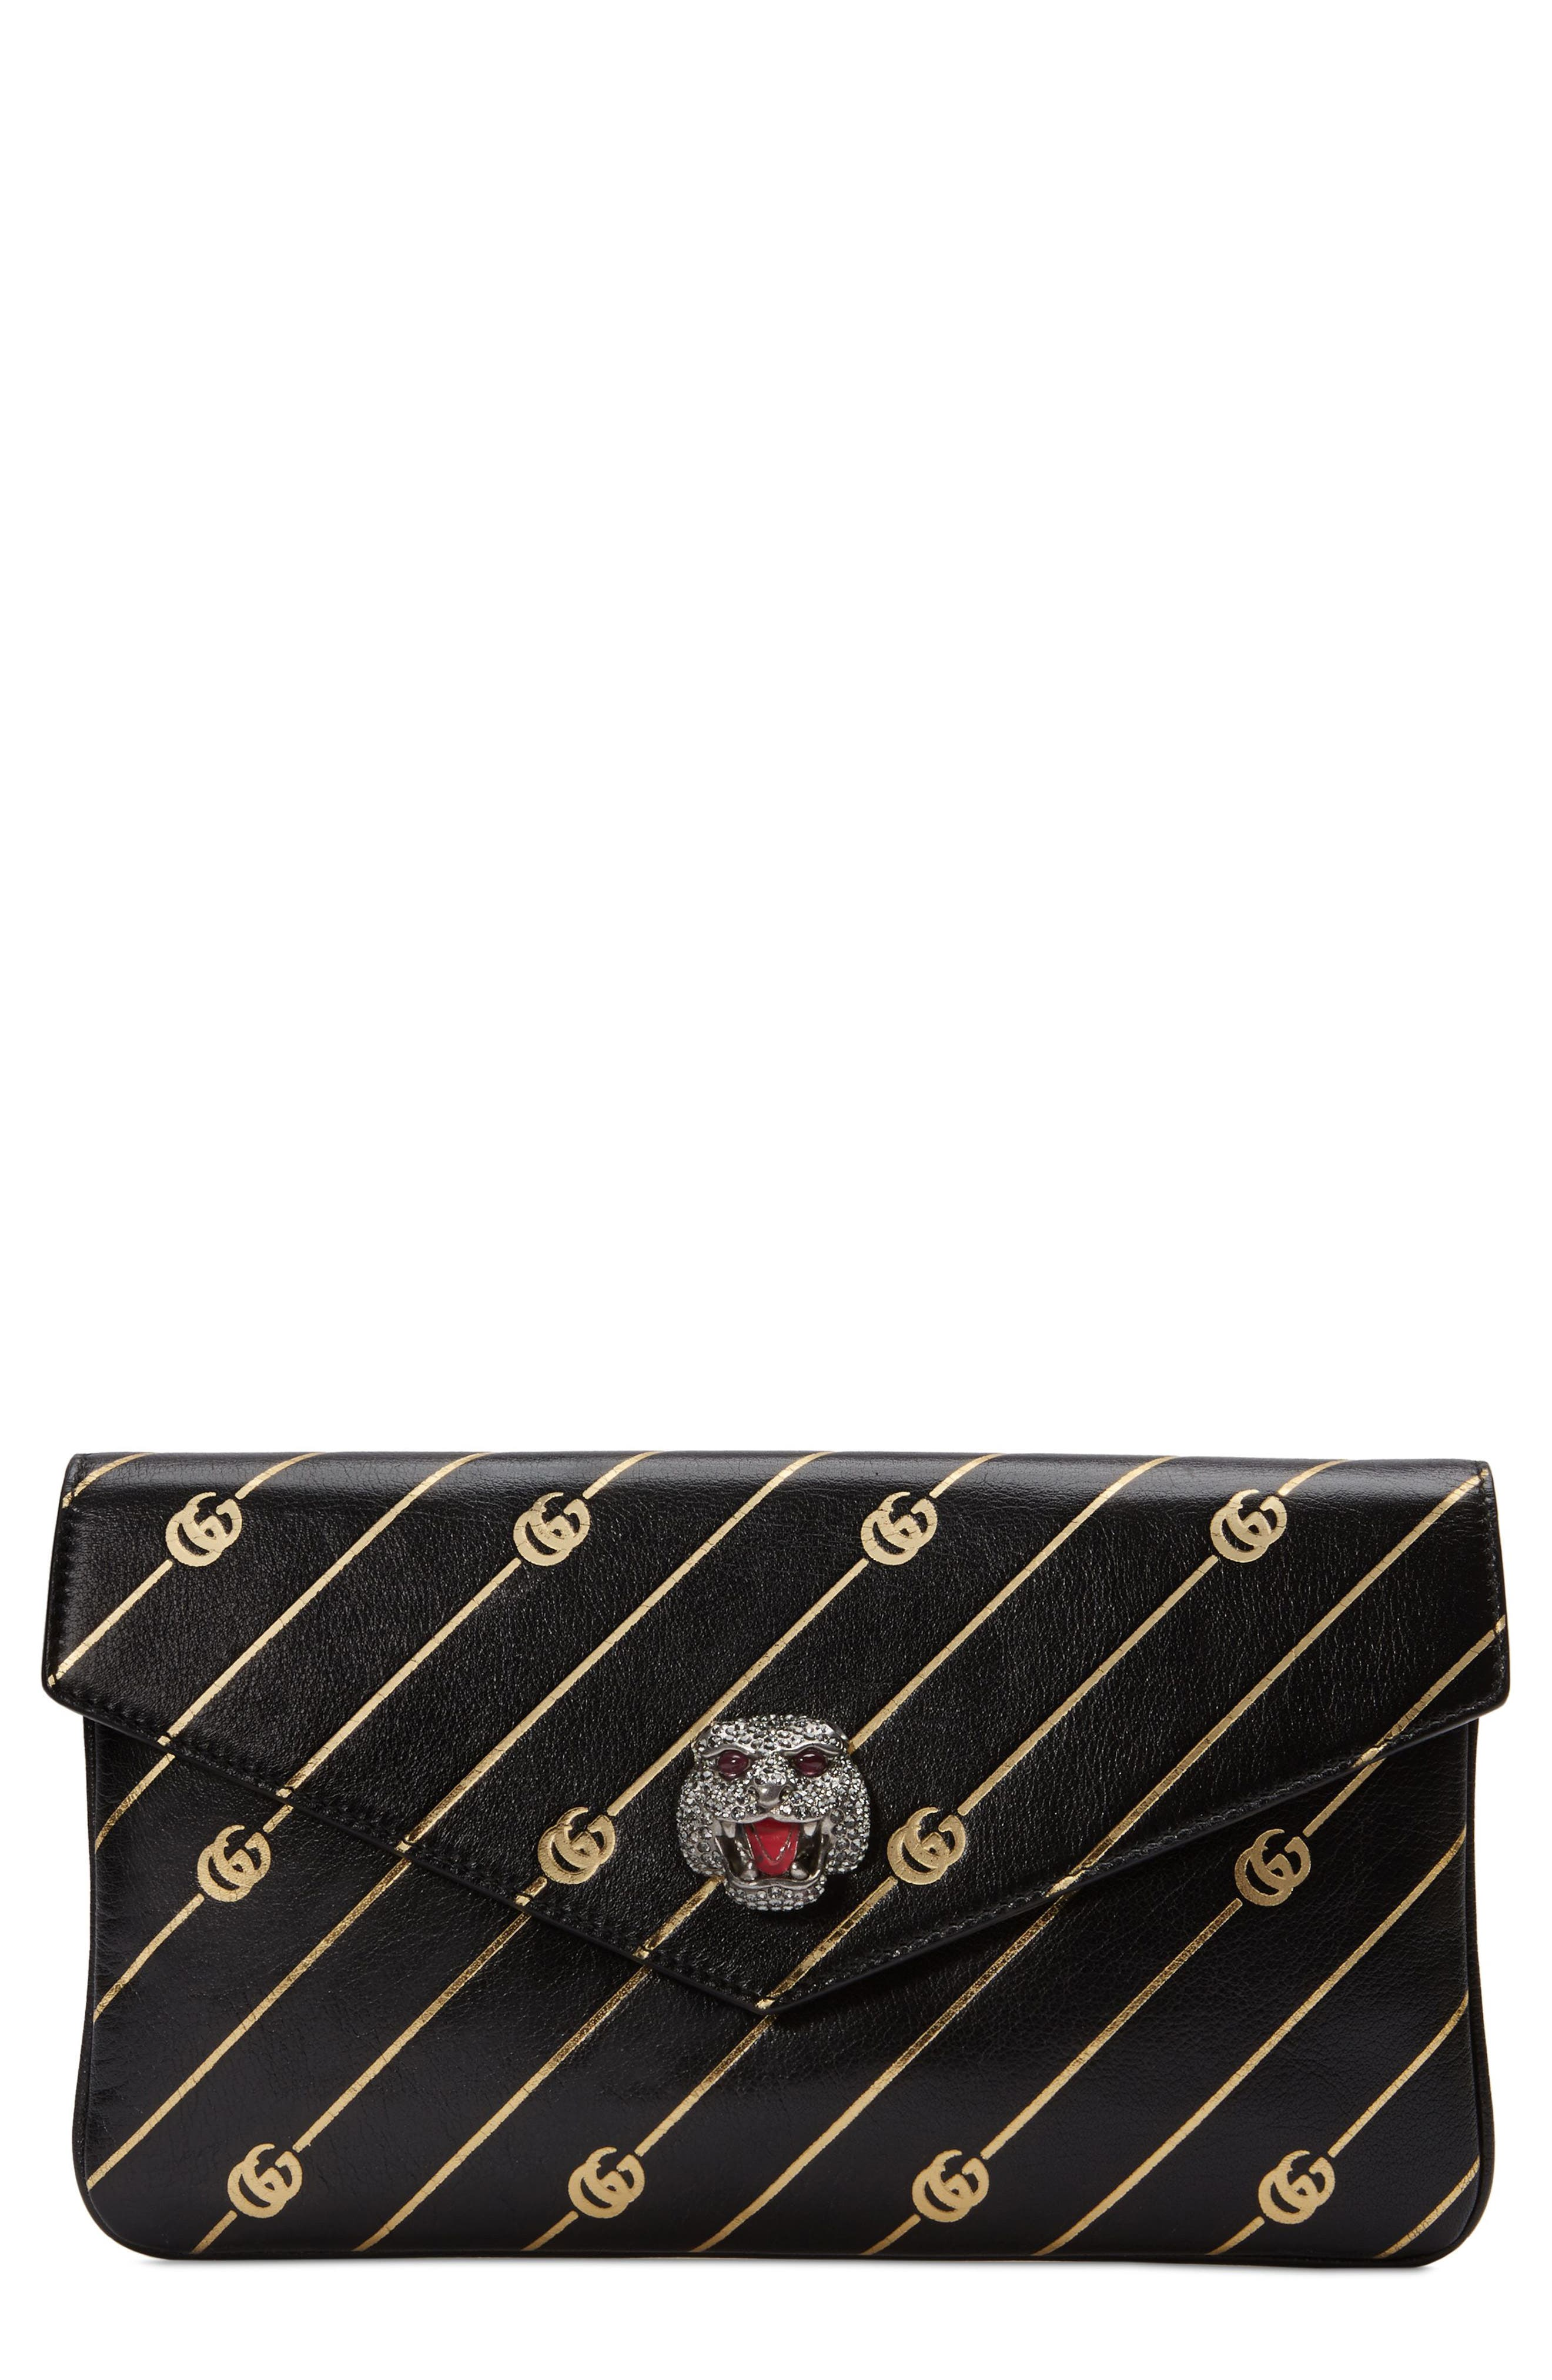 Broadway GG Archive-P Leather Envelope Clutch,                             Main thumbnail 1, color,                             NERO ORO MULTI